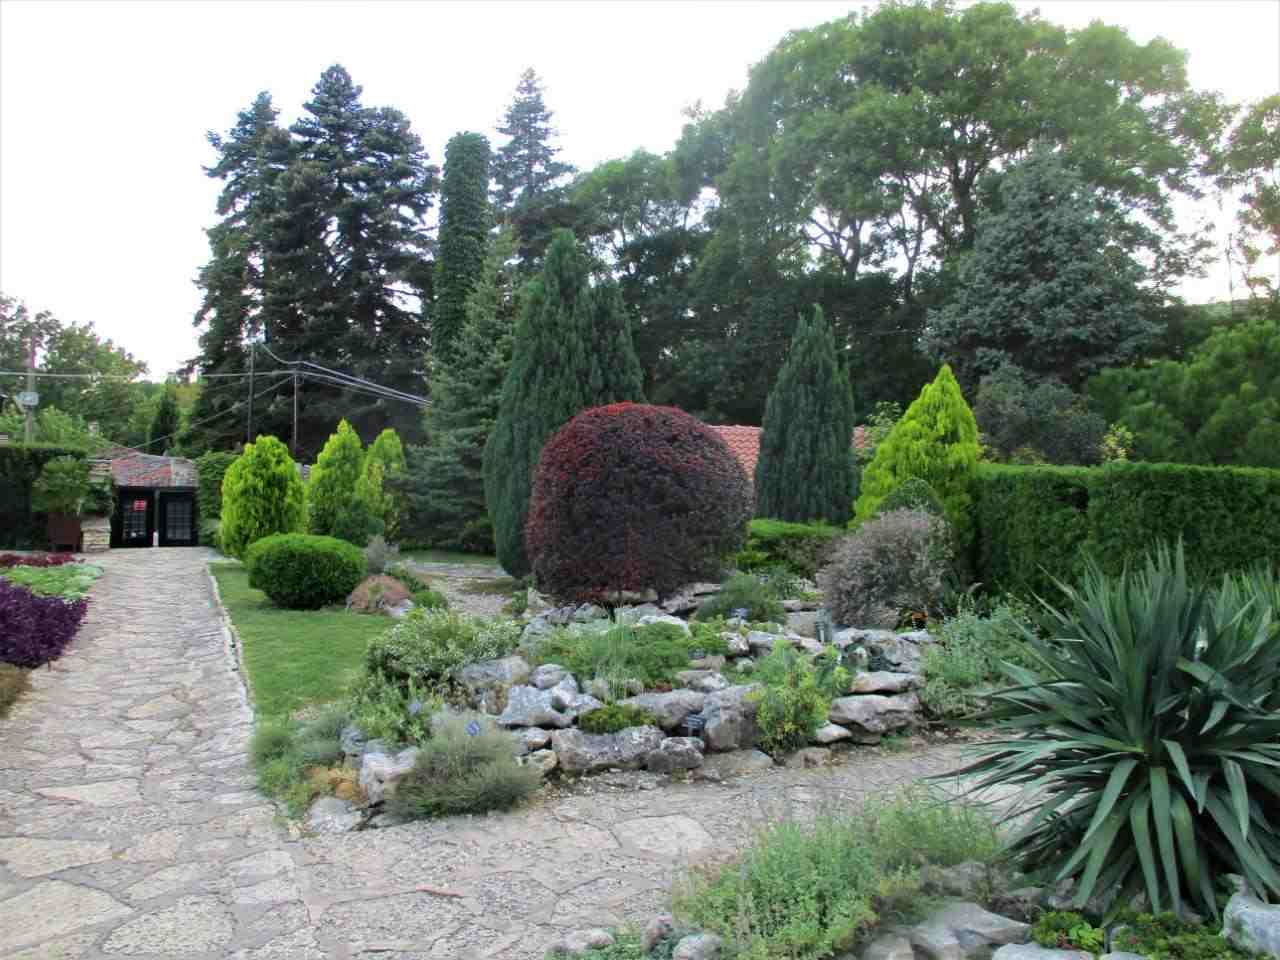 Photo of the rockery garden in Balchik showing phormium and berberis